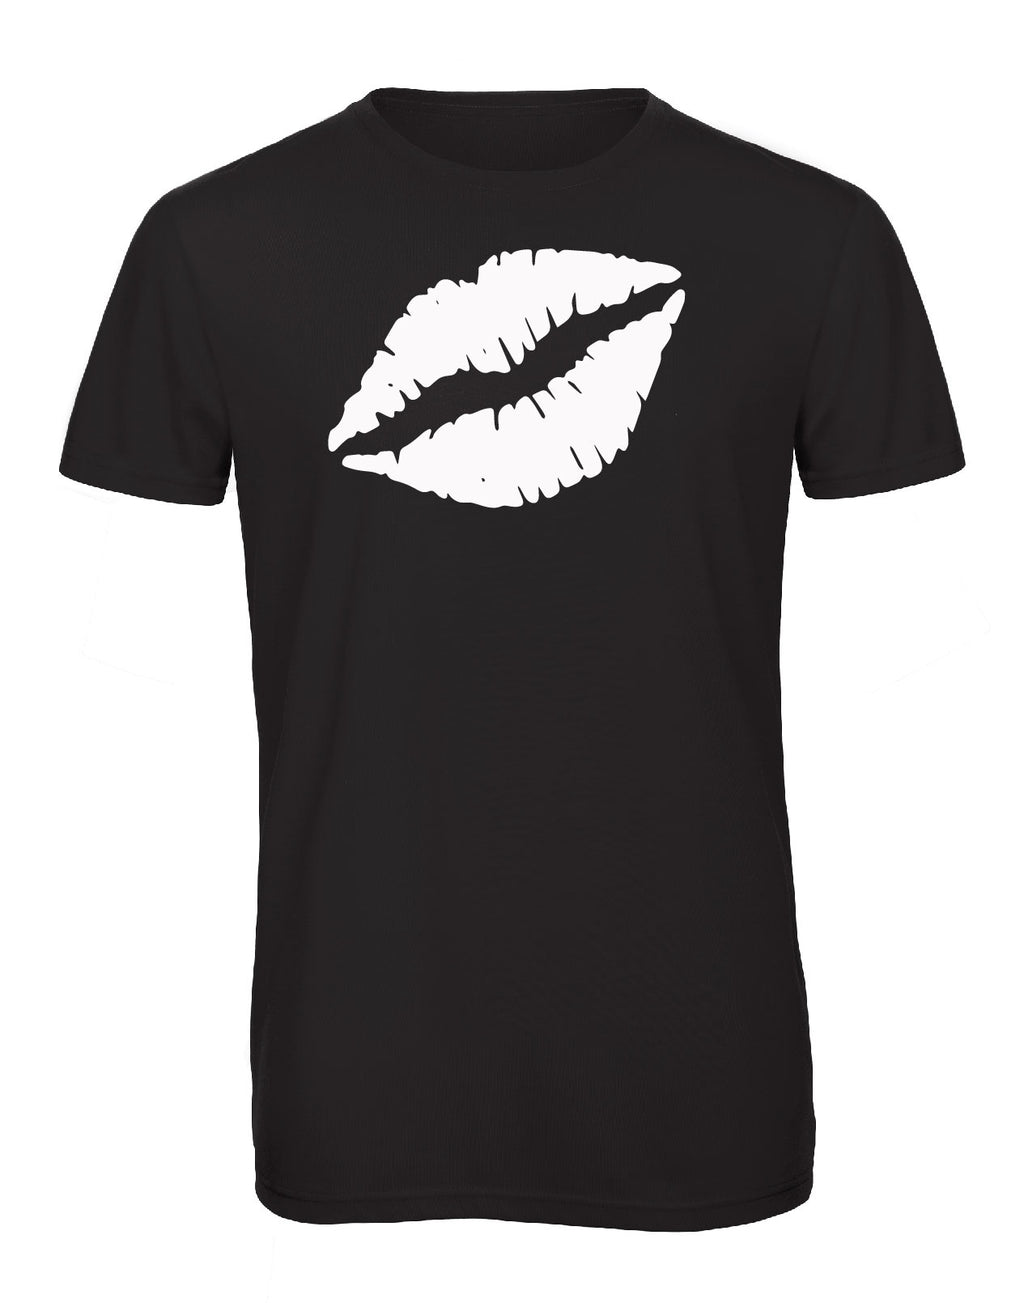 Gem Lips Crew Neck Black - Available in Black and White Tees